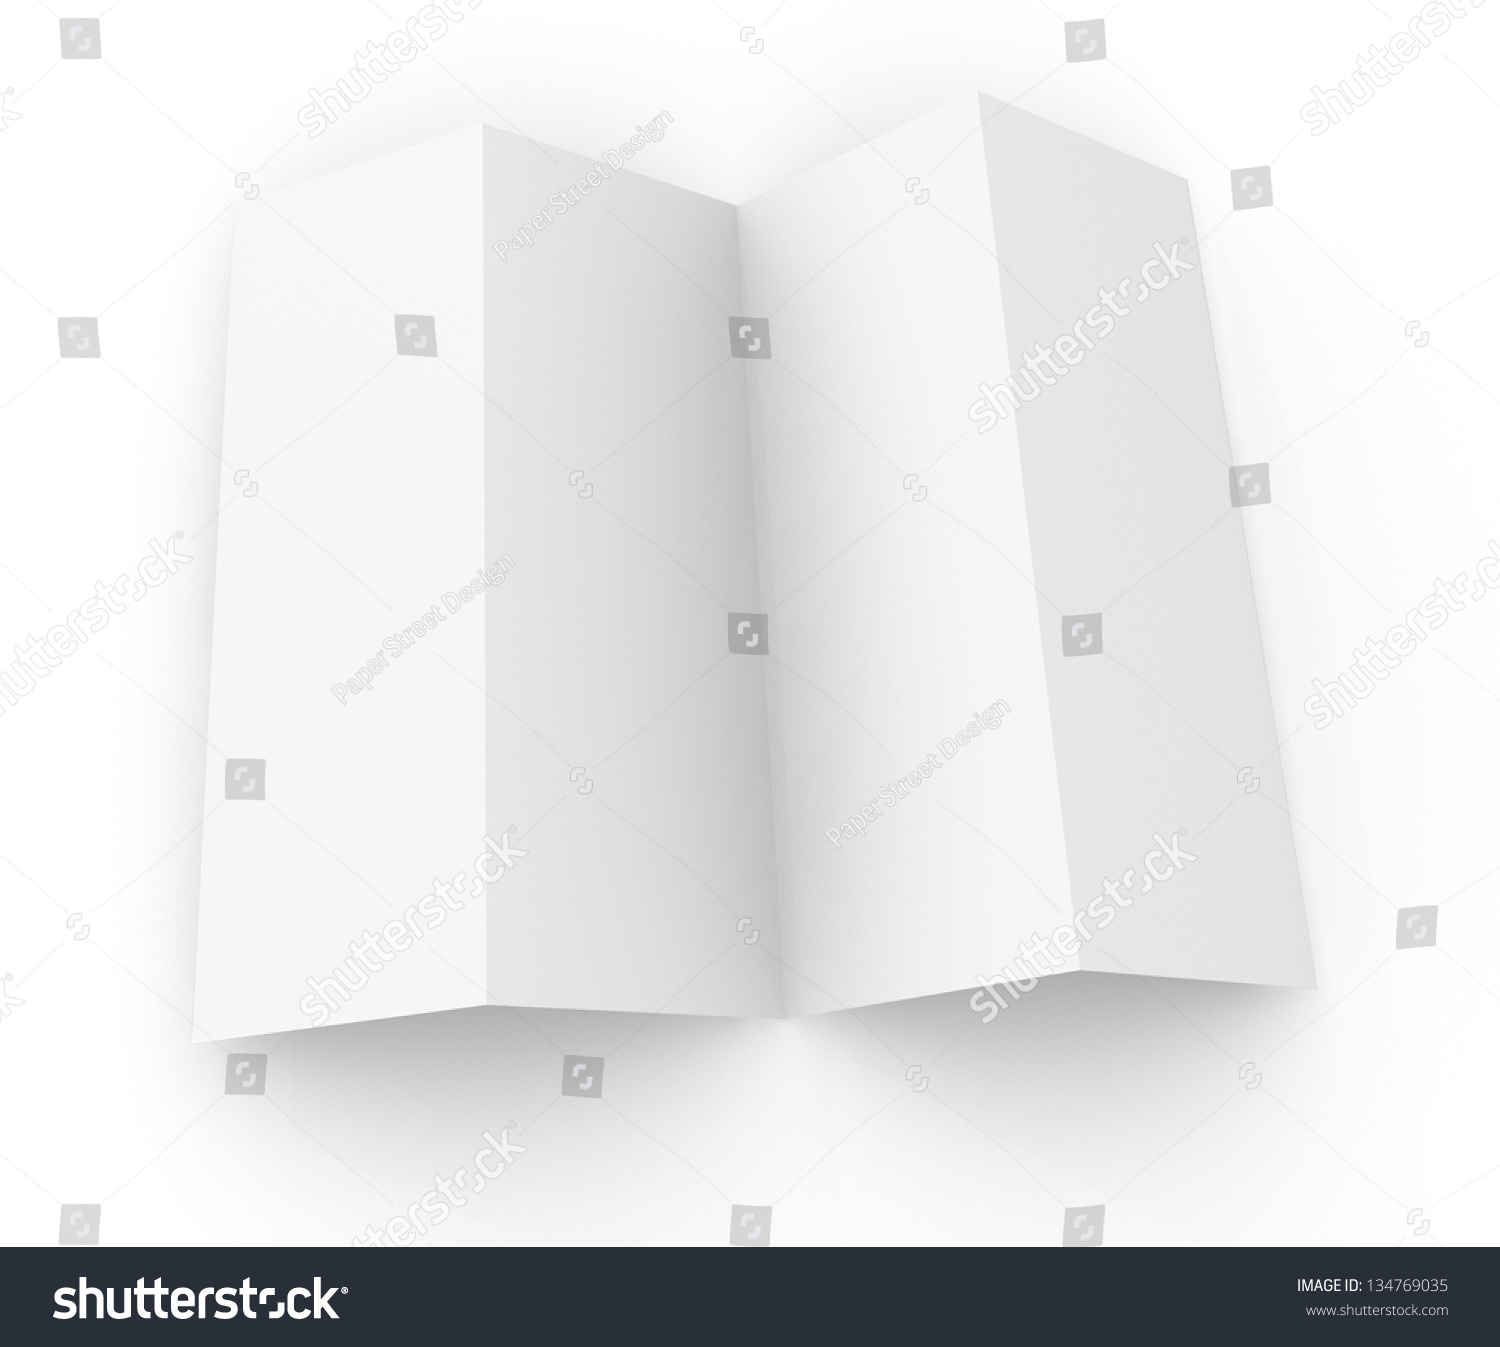 Blank template of a 4 panel brochure stock photo 134769035 for 4 panel brochure template